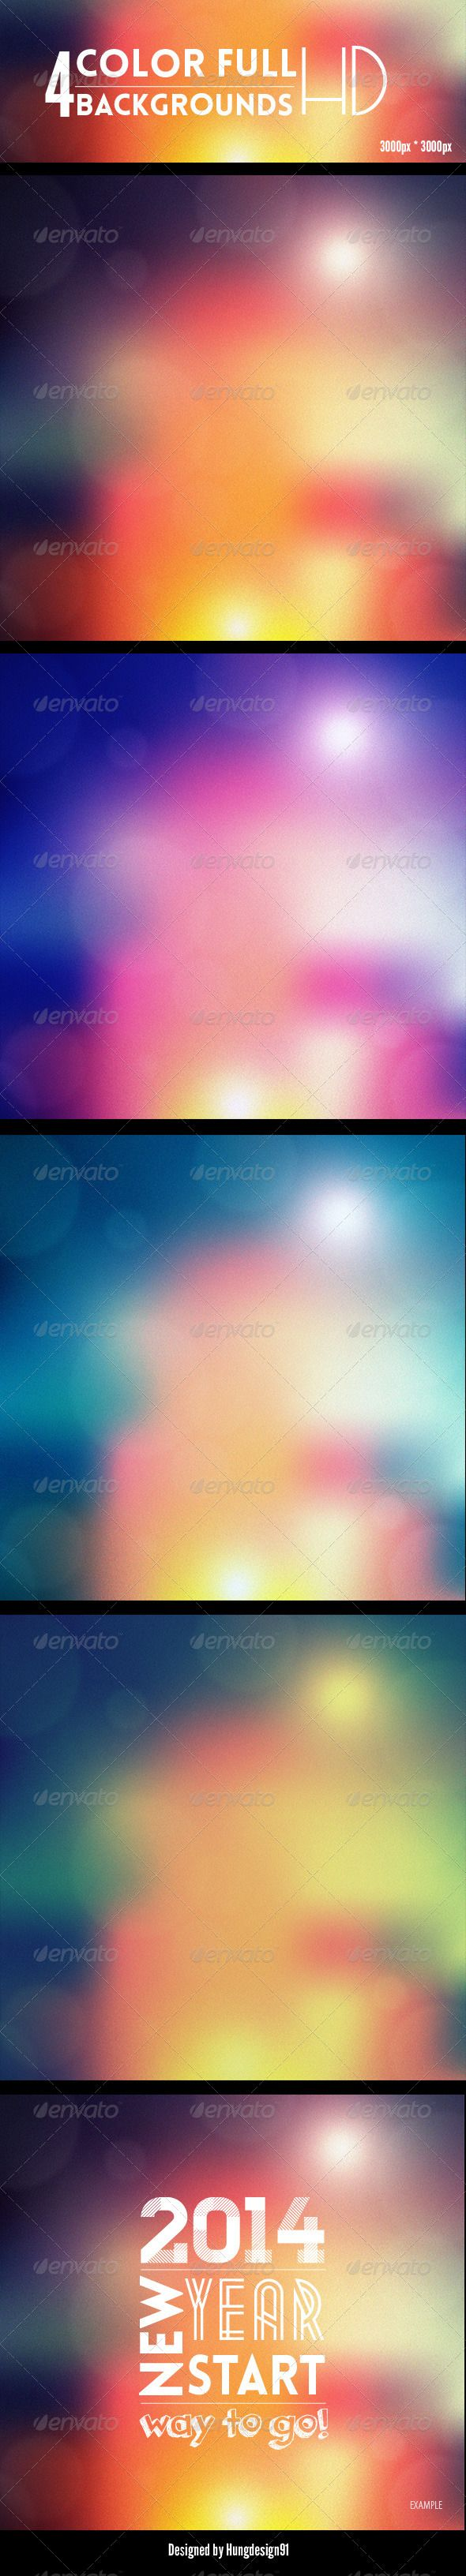 4 Amazing Color Full Backgrounds